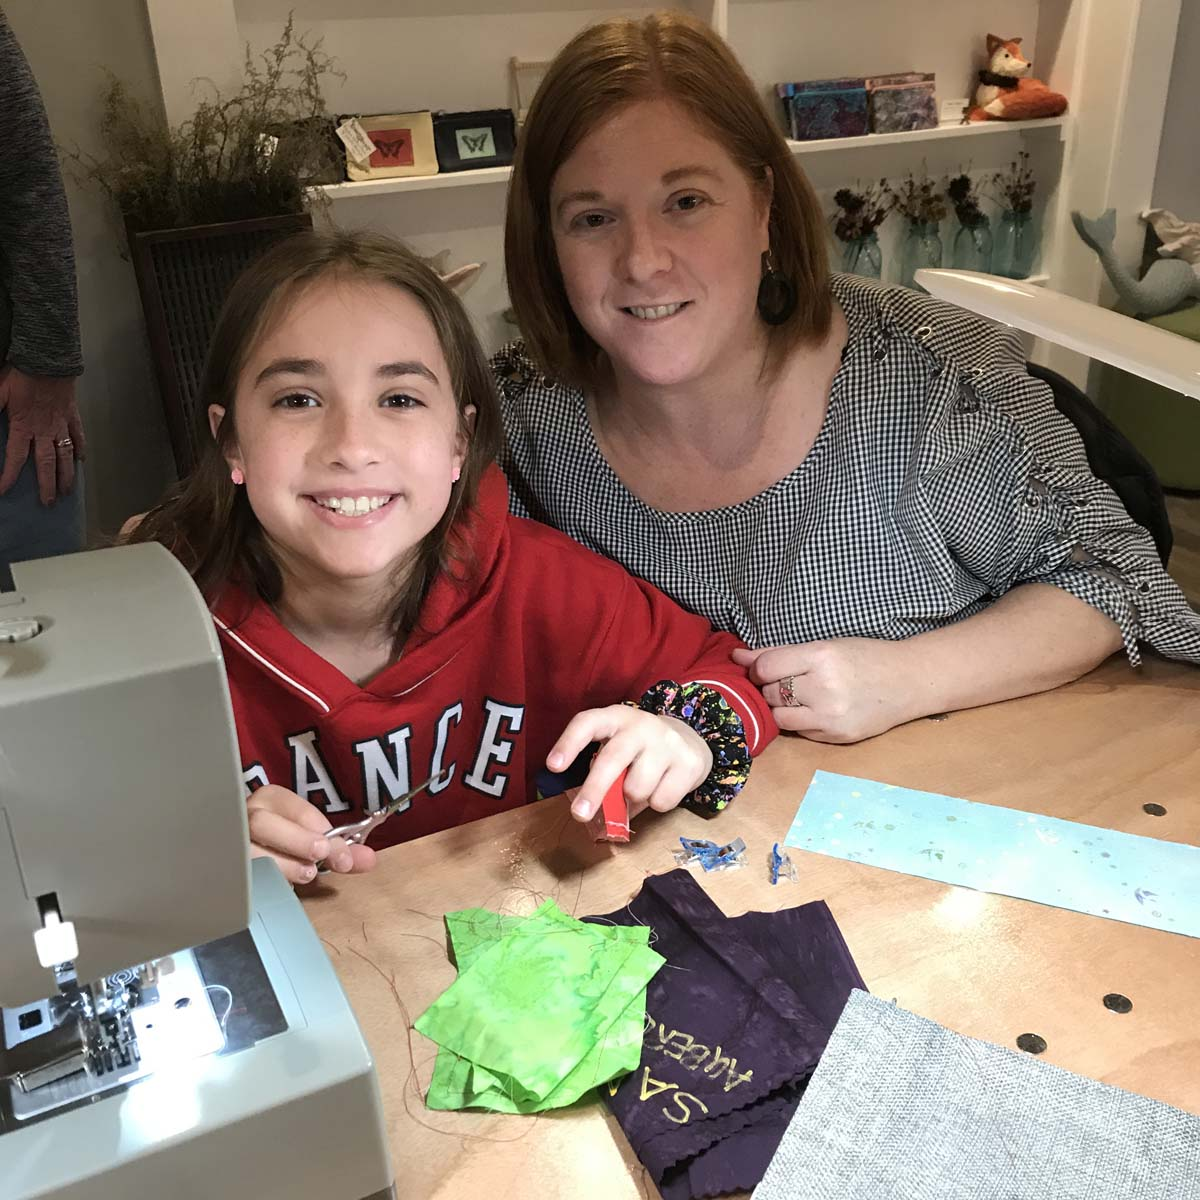 Child seated at sewing machine with adult next to her.